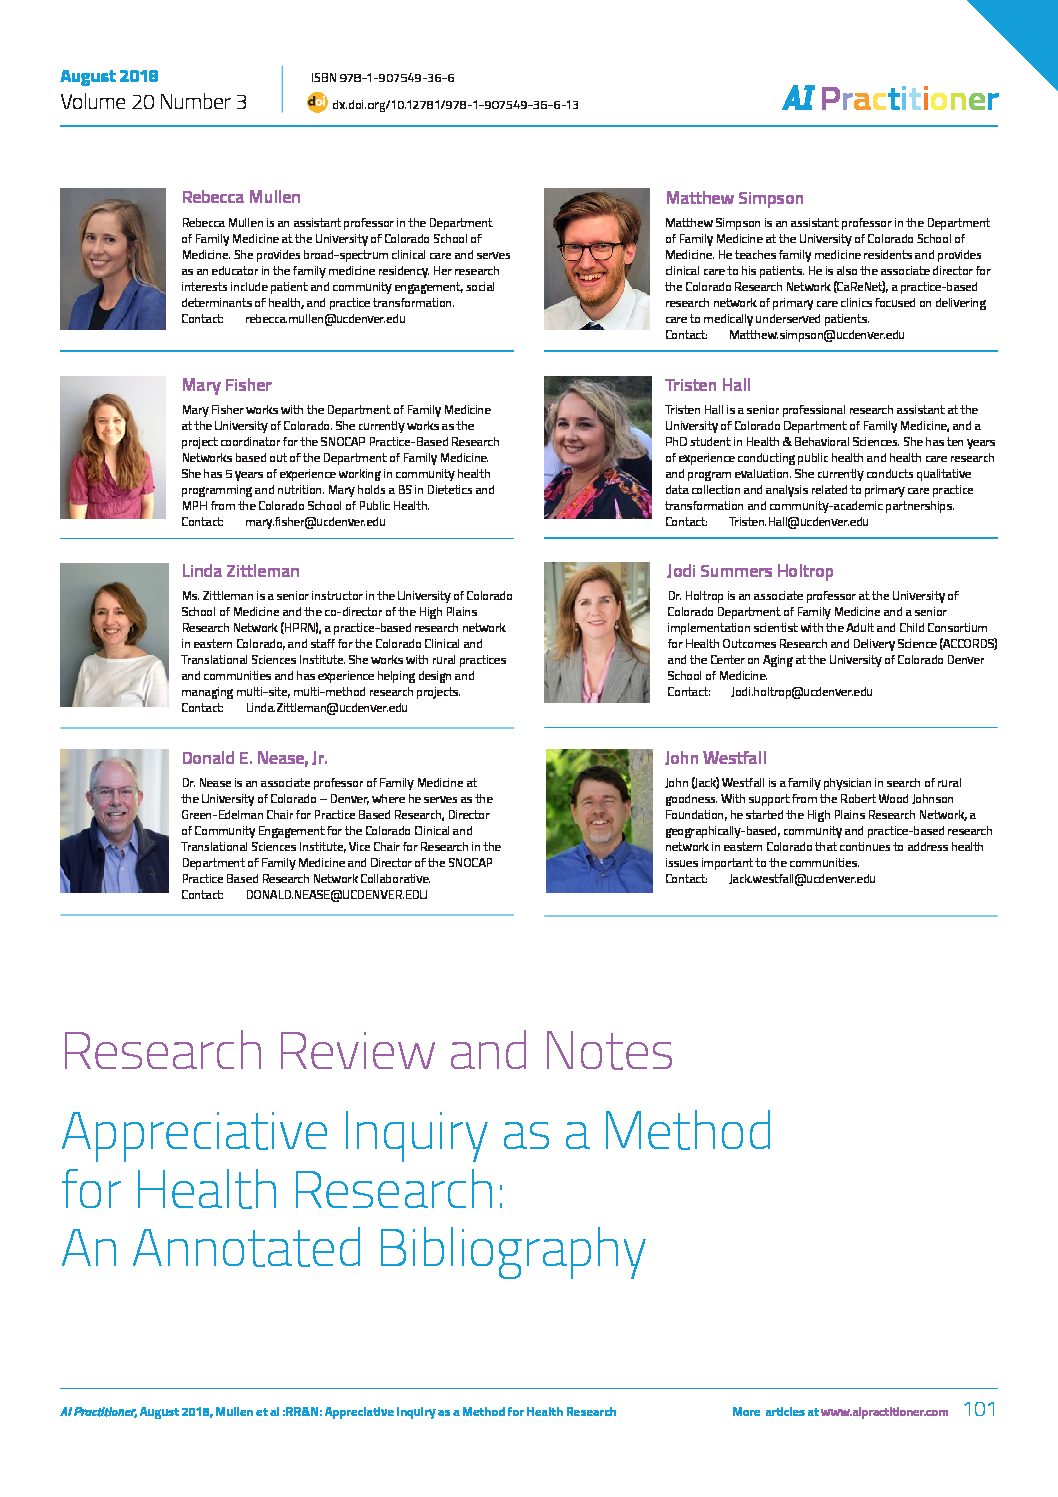 aip-august18-appreciative-voice-annotated-bibliography-ai-and-health-research